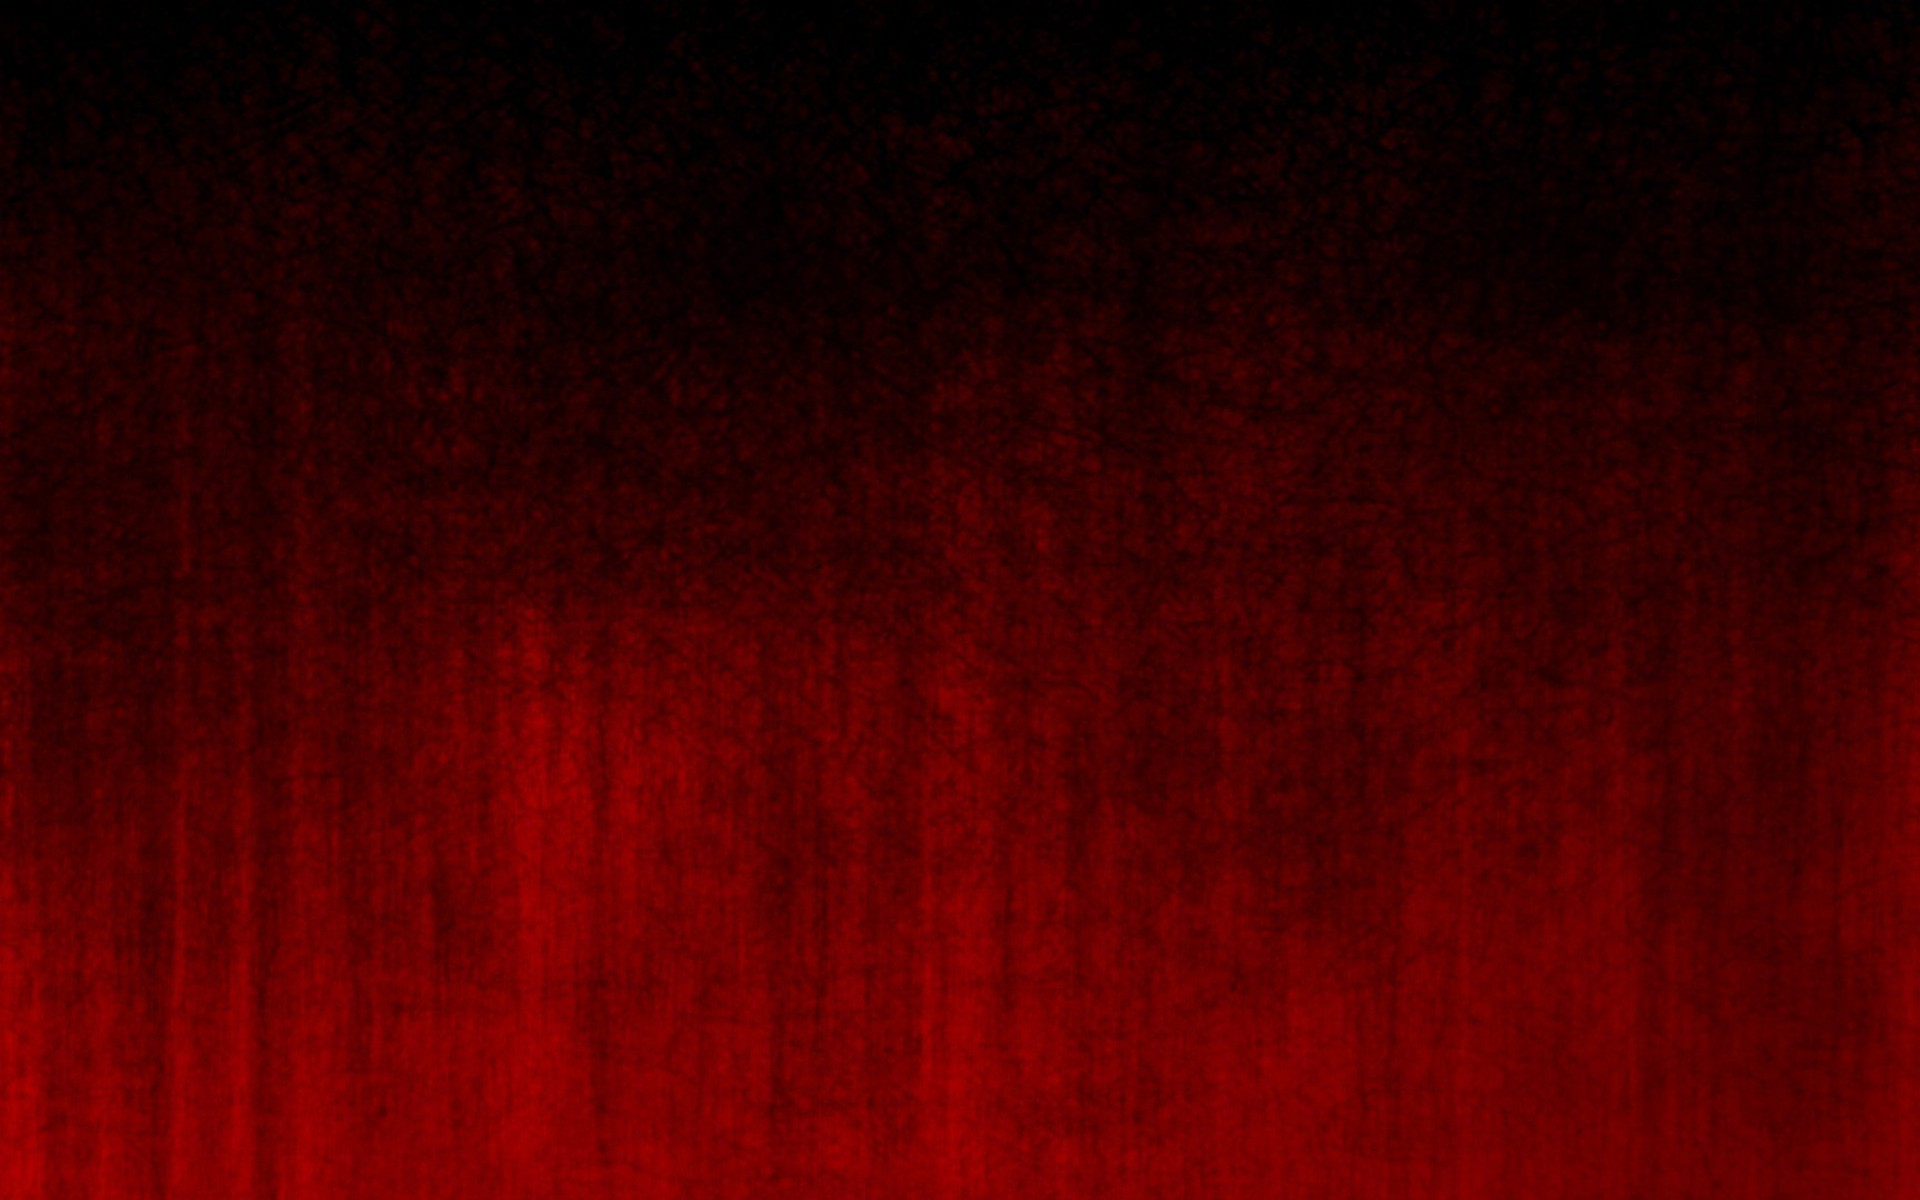 Red Grunge Background 1280x720: Minimalistic Red Wallpaper